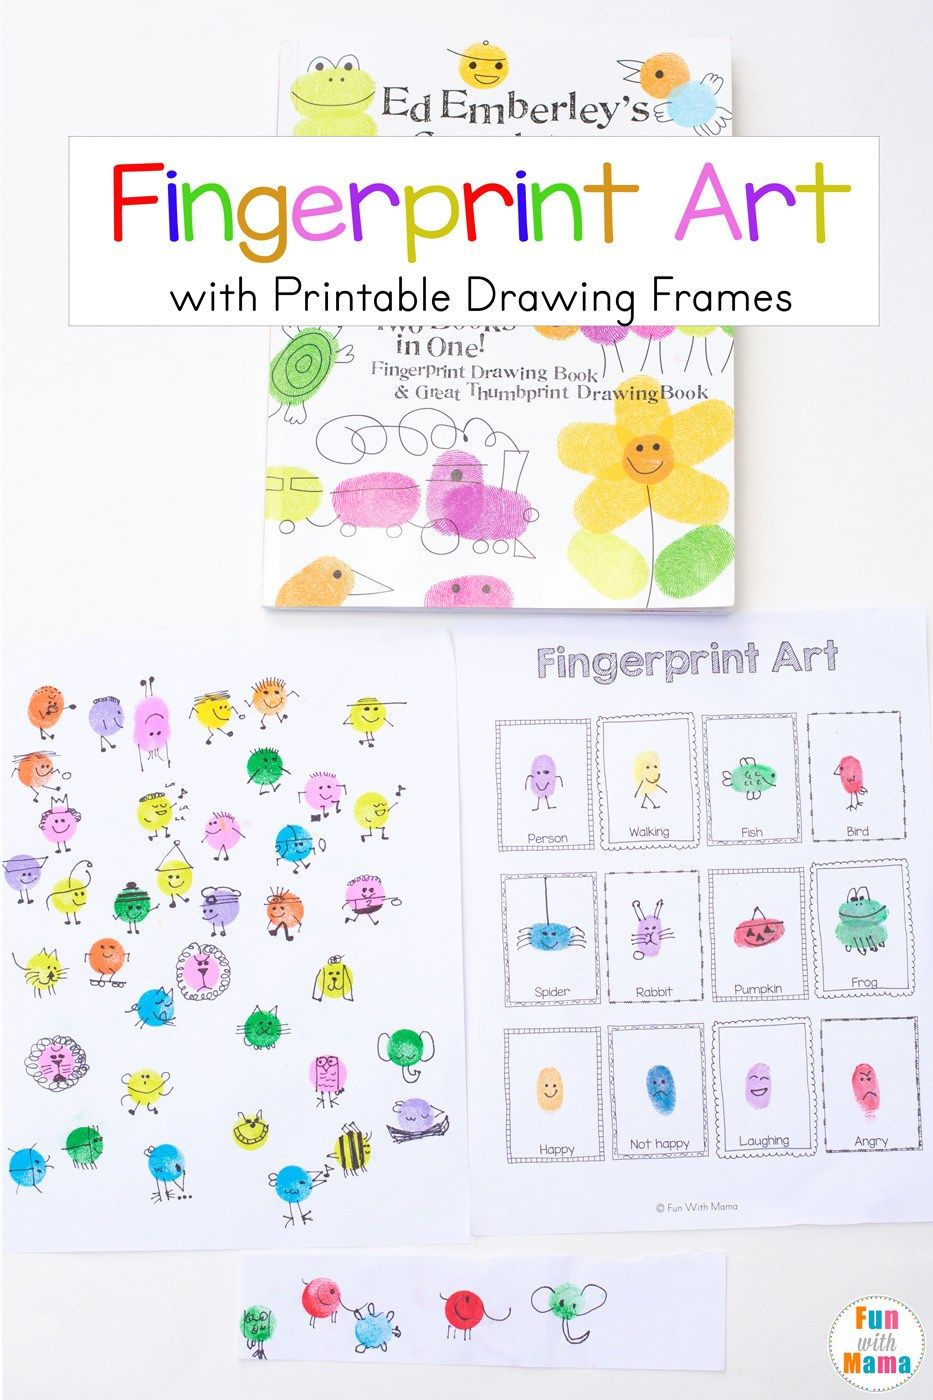 Fingerprint Art Drawing Ideas With Printable Drawing Frames